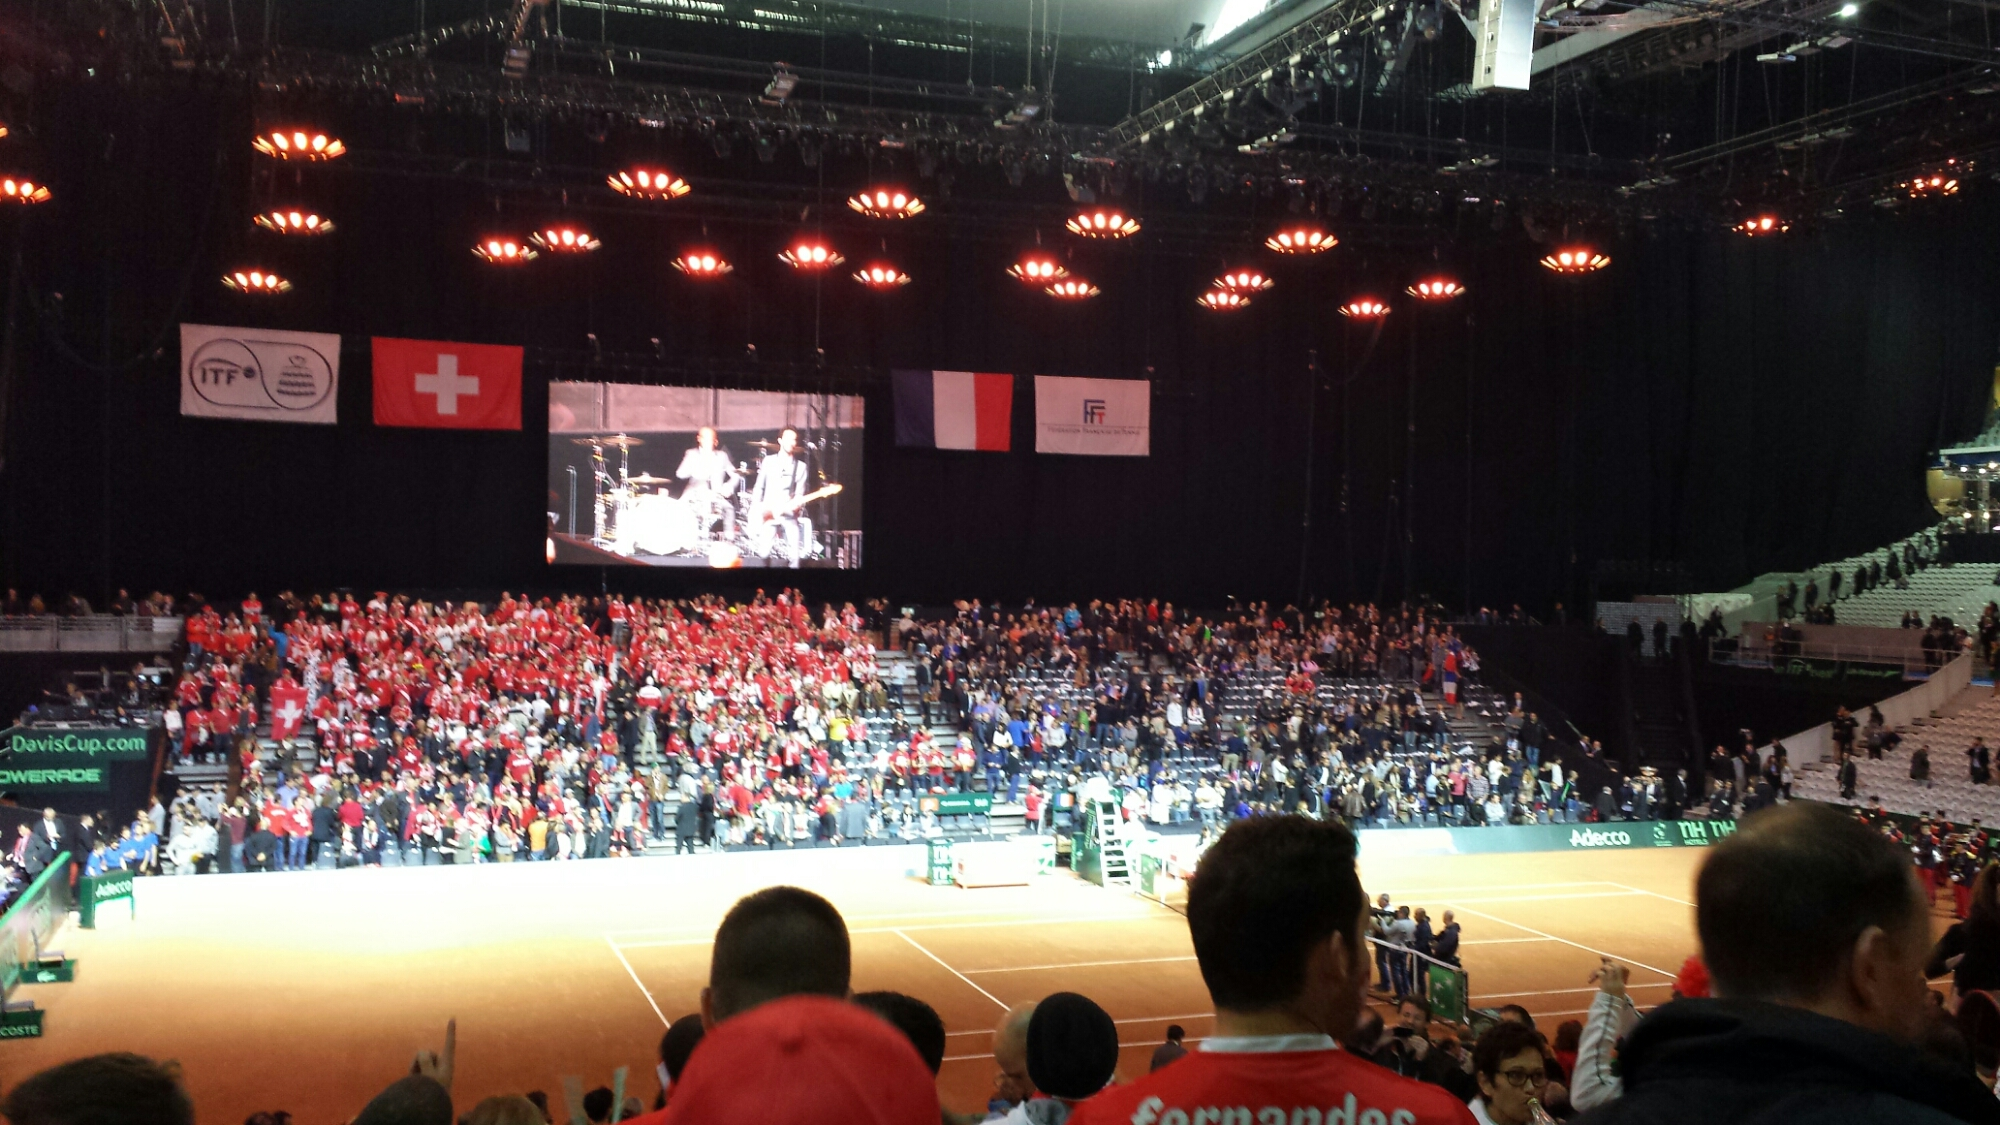 Davis Cup Seat View